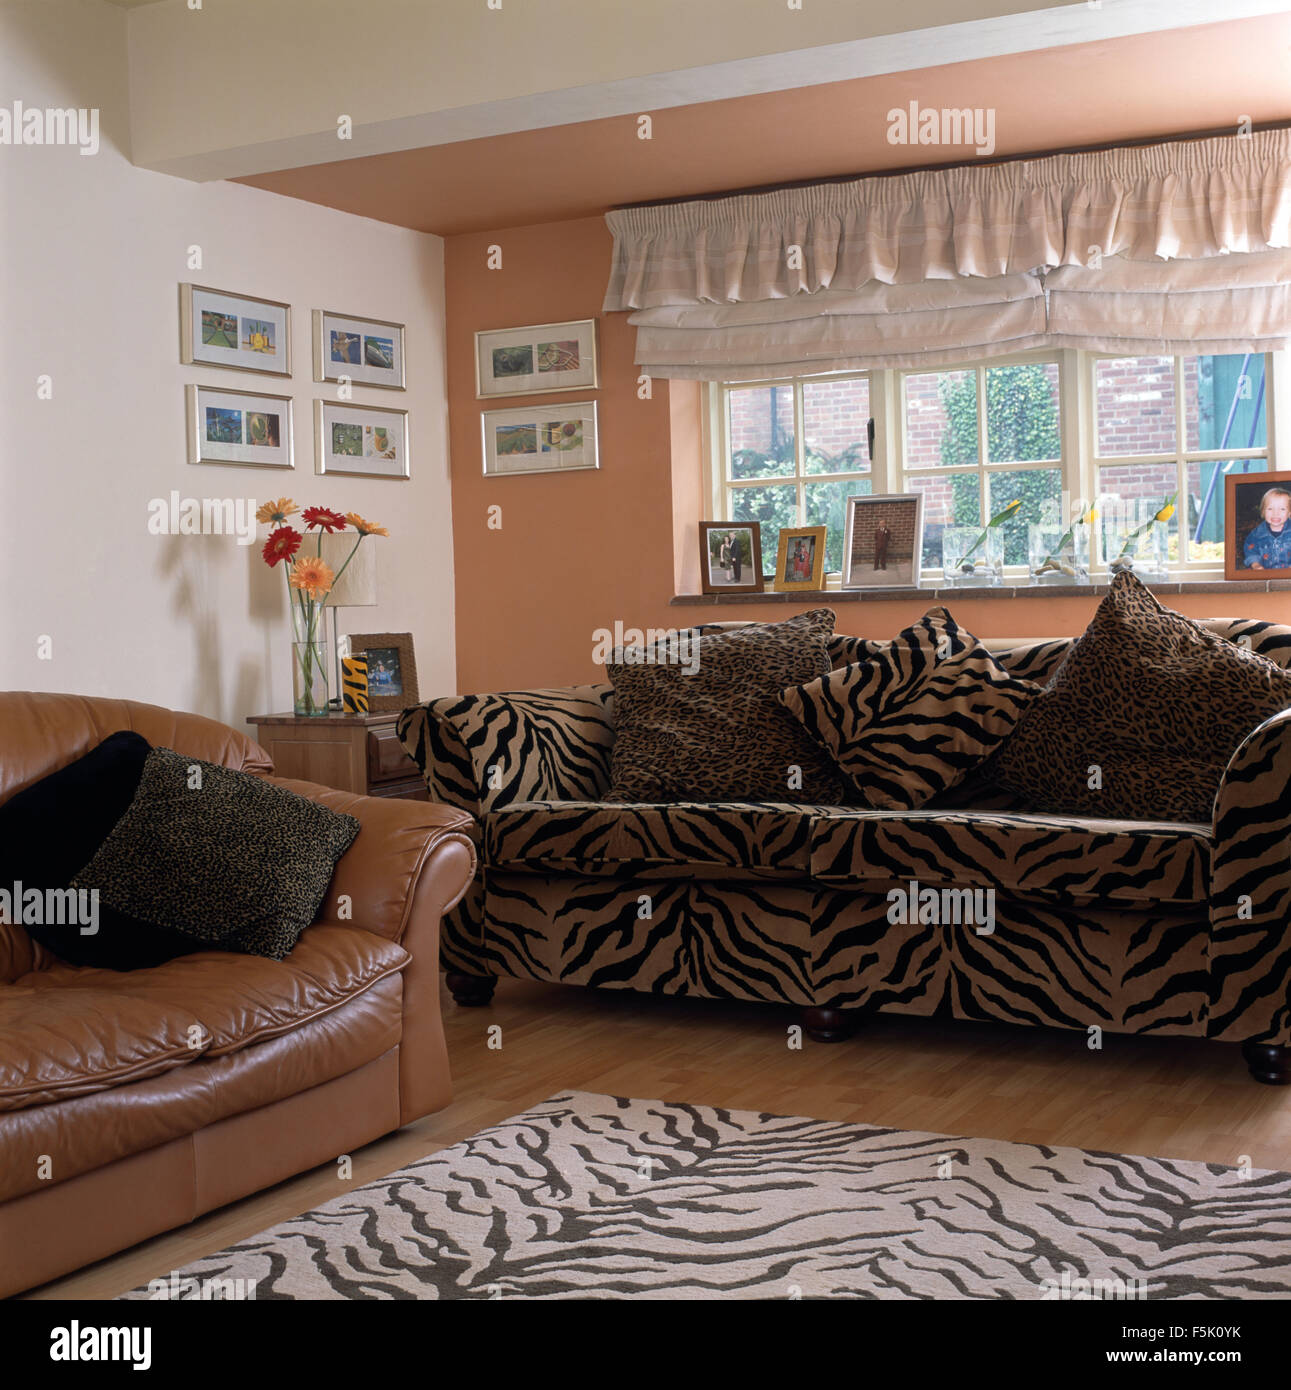 Frilled Blind Above Tiger Print Sofa And Matching Rug In